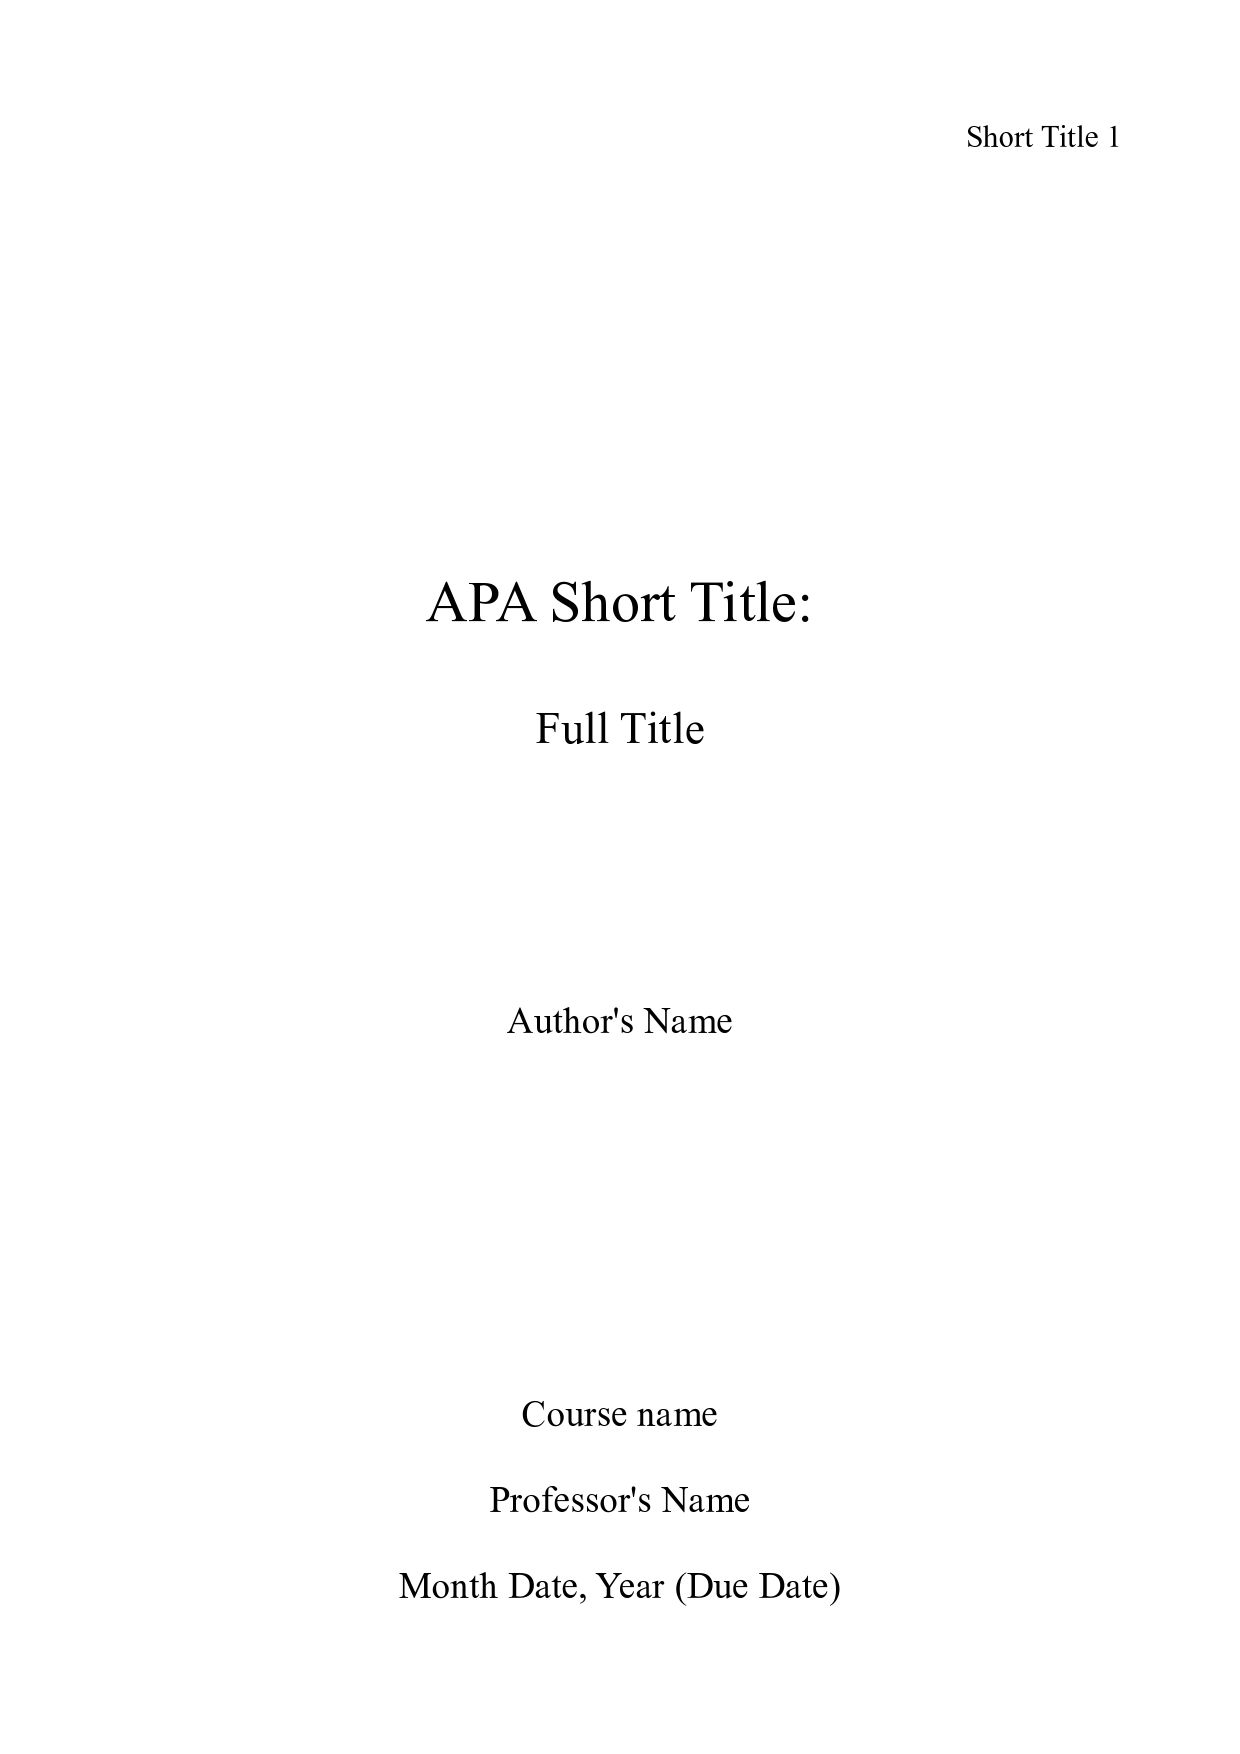 002 Research Paper Cover Page Template For Apa Rare Sample How To Do A Format Full